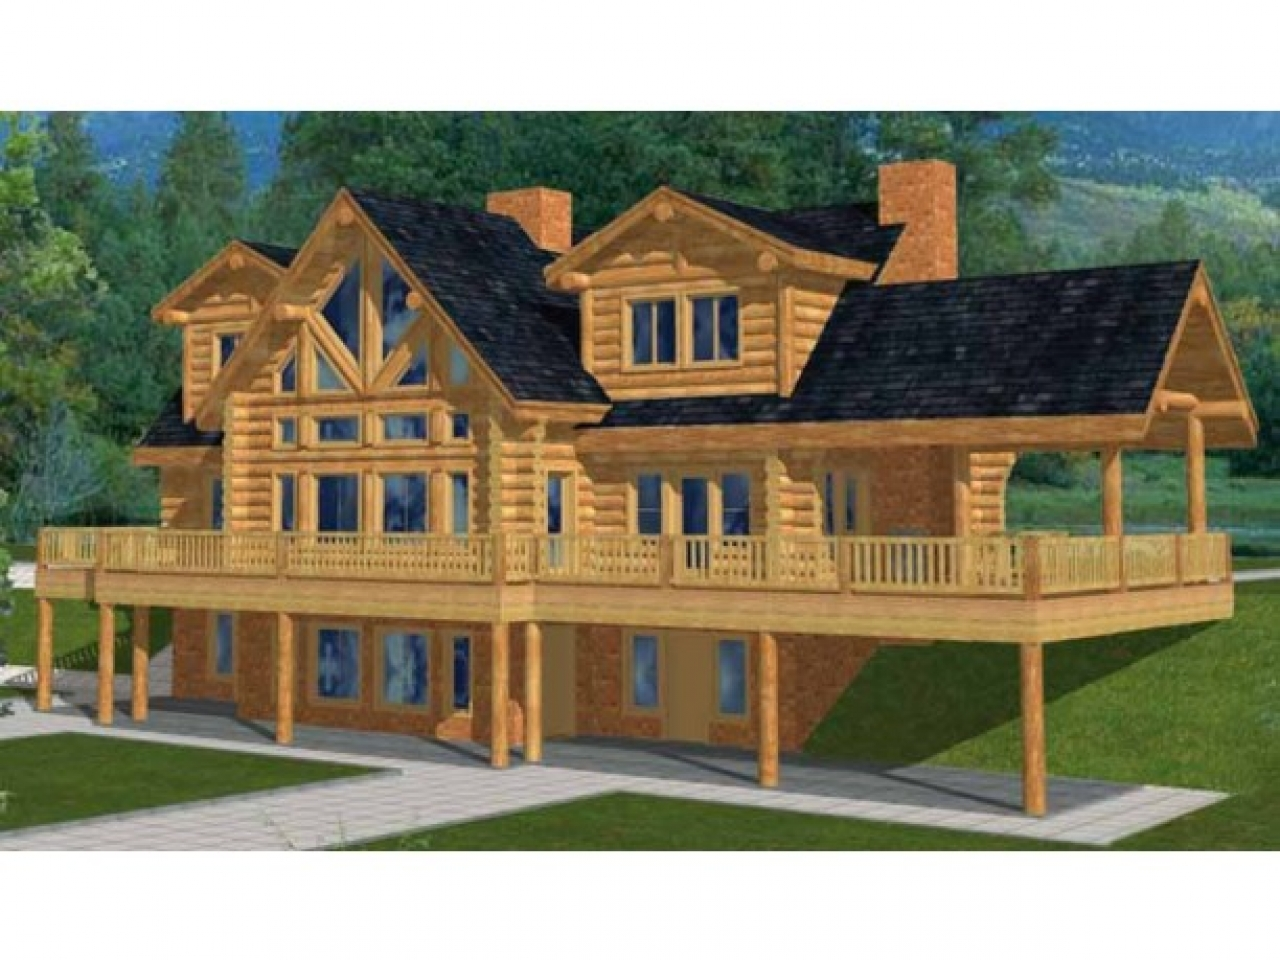 Two story log cabin house plans inexpensive modular homes for Log cabin home floor plans